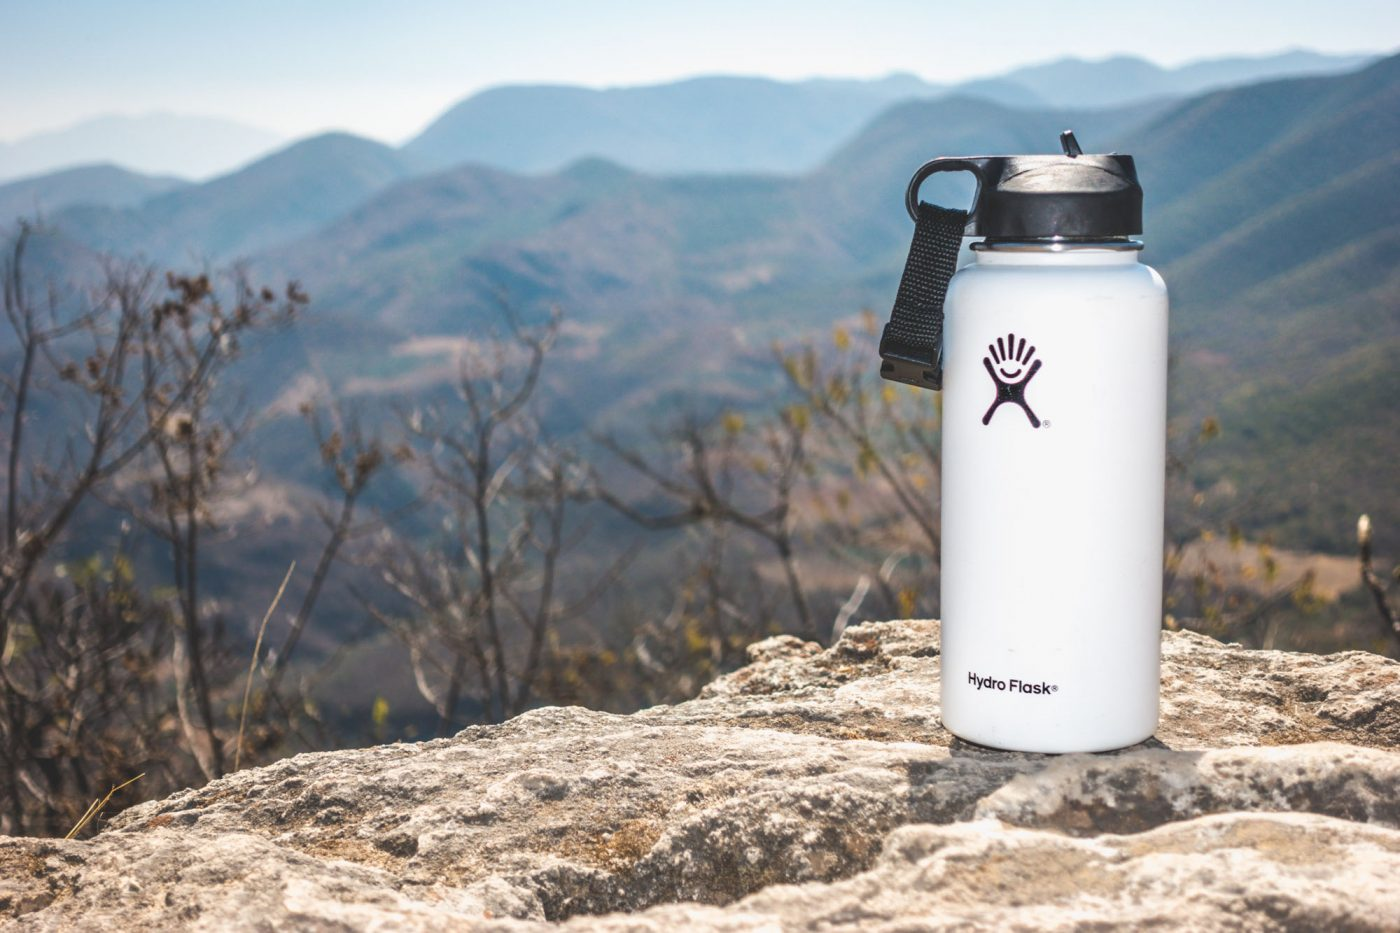 Hydro Flask, our favourite eco friendly accessory for any adventure